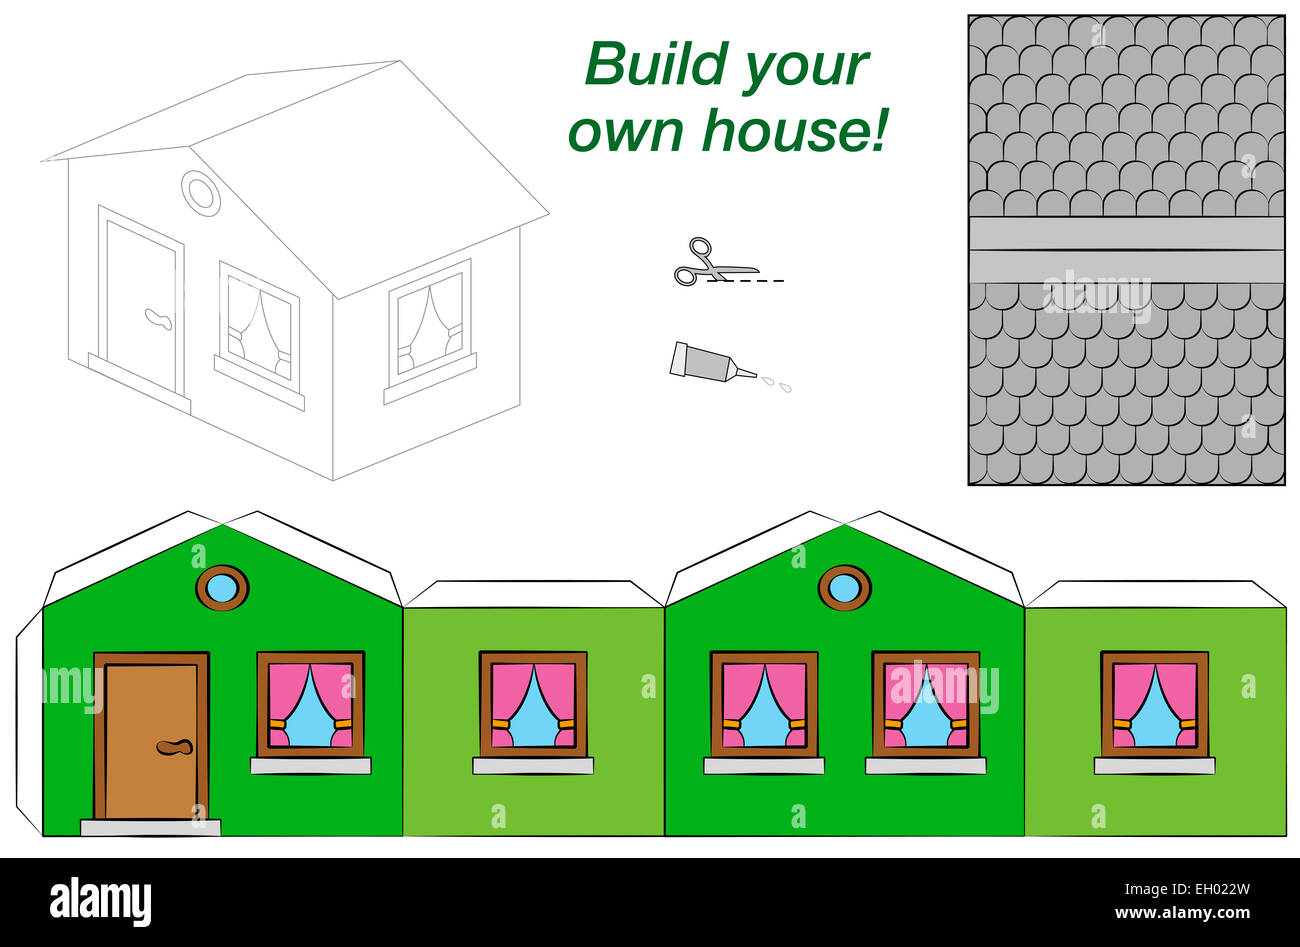 Paper Model Of A Funny Cartoon House With Green Walls Pink Curtains